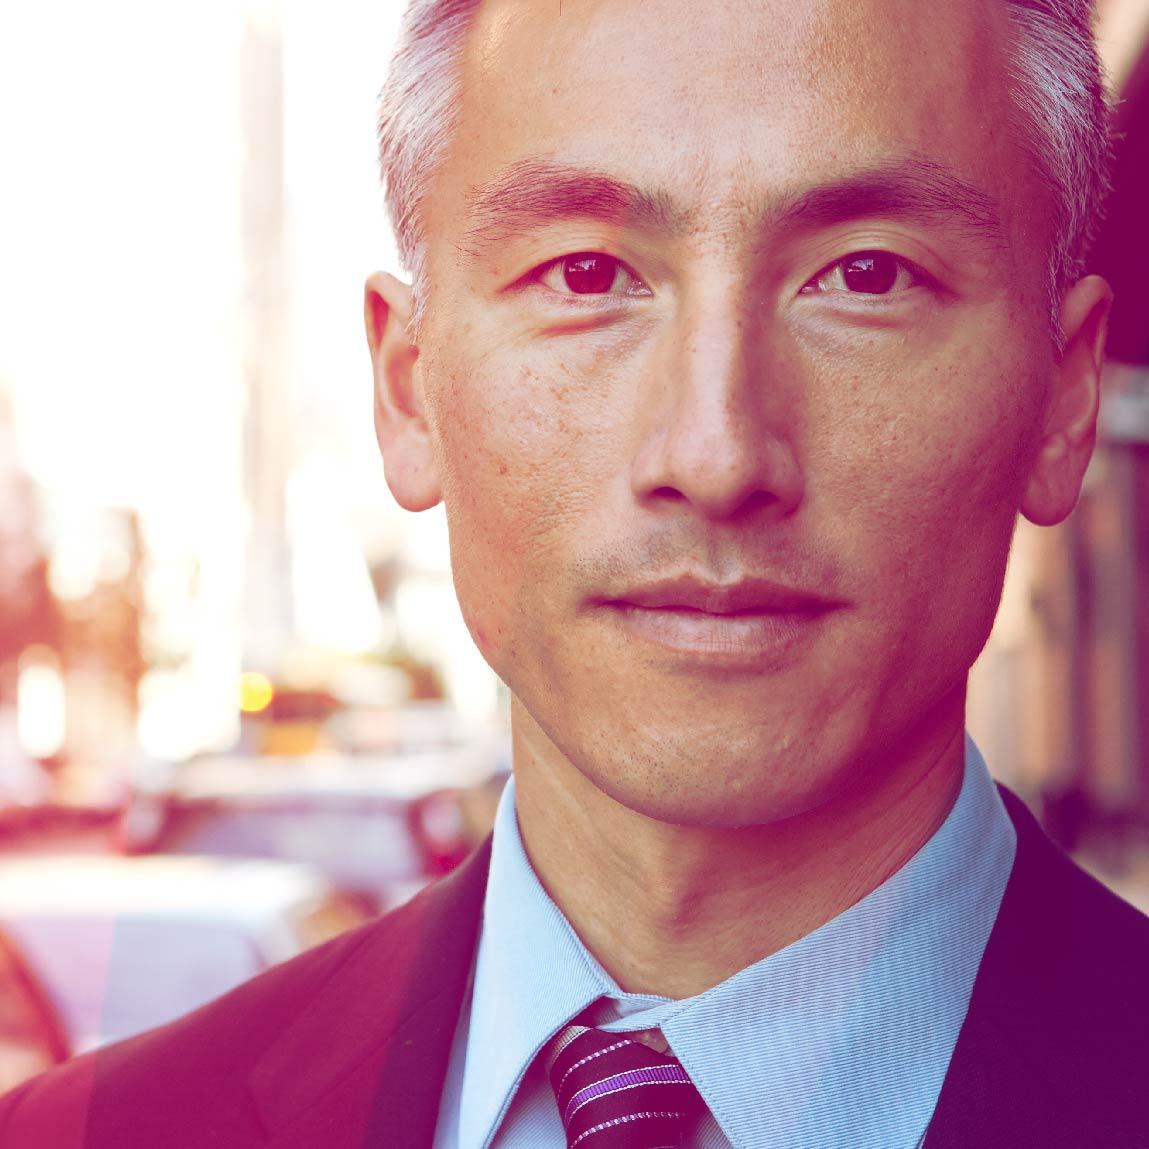 FG Portraits - Middle Age Asian Man in Suit.jpg